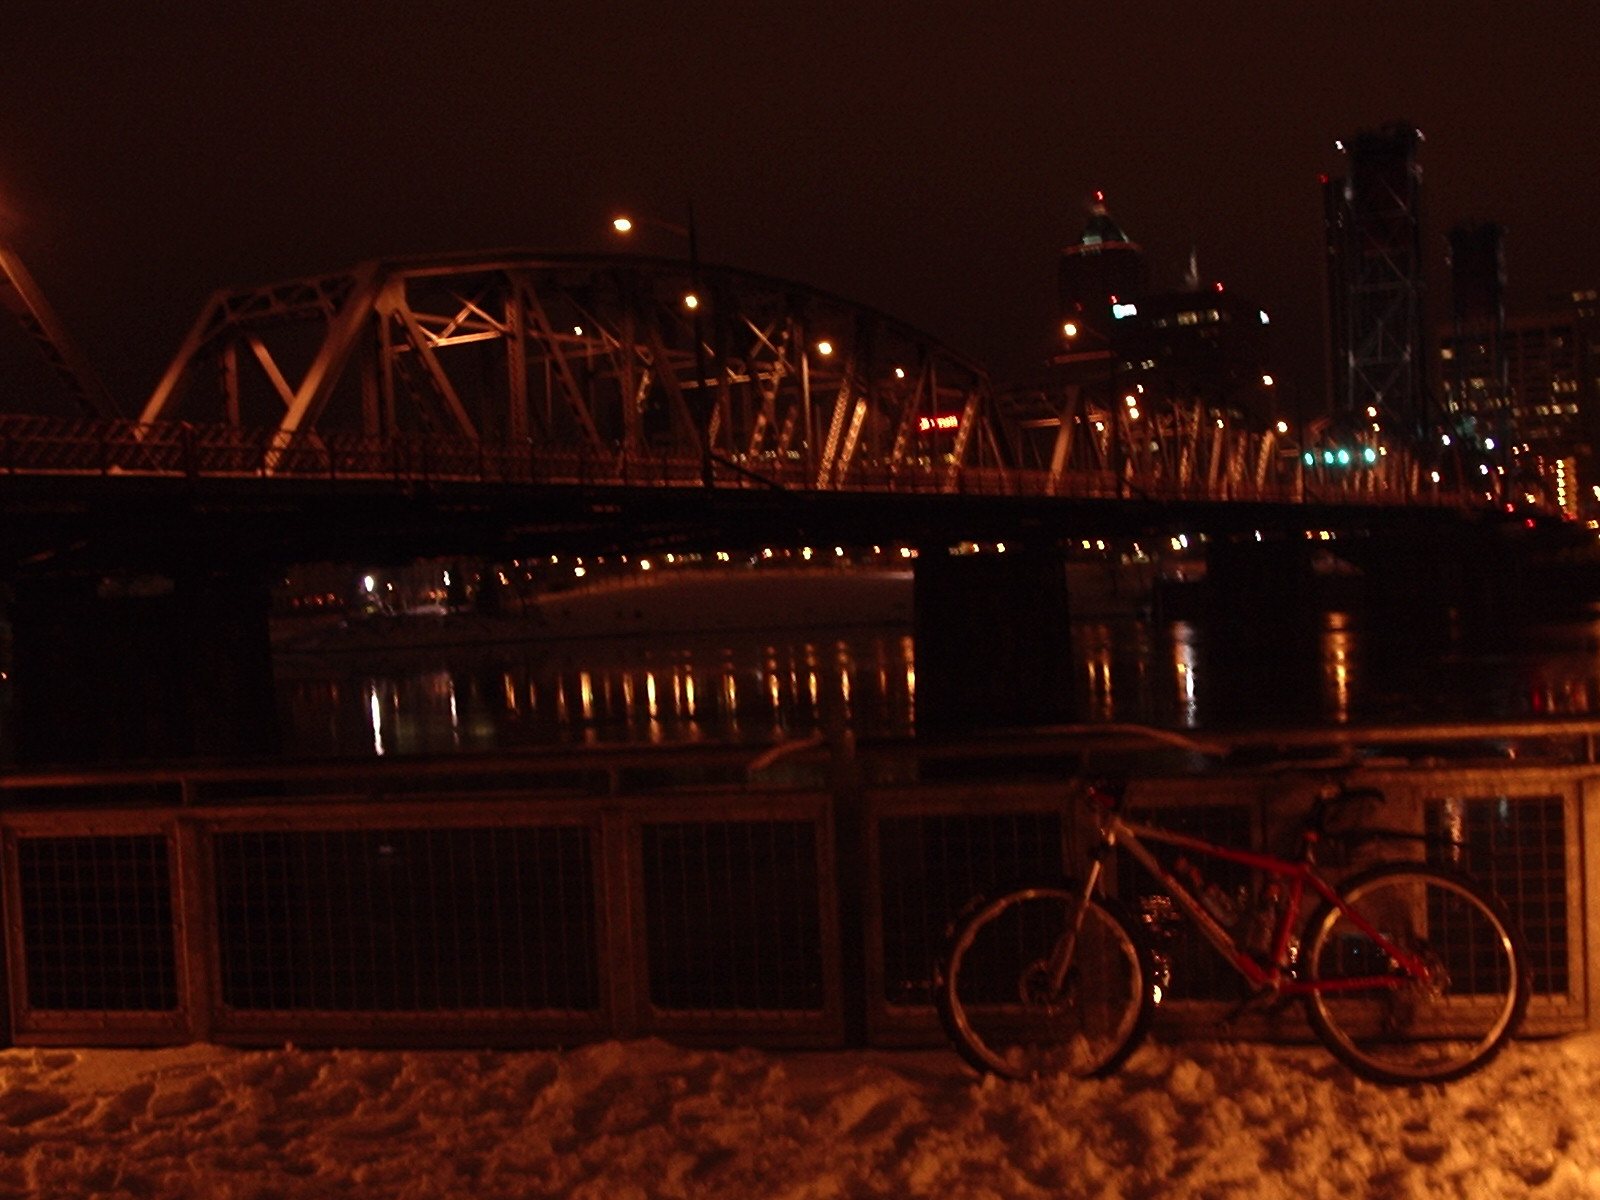 The Hawthorne Bridge